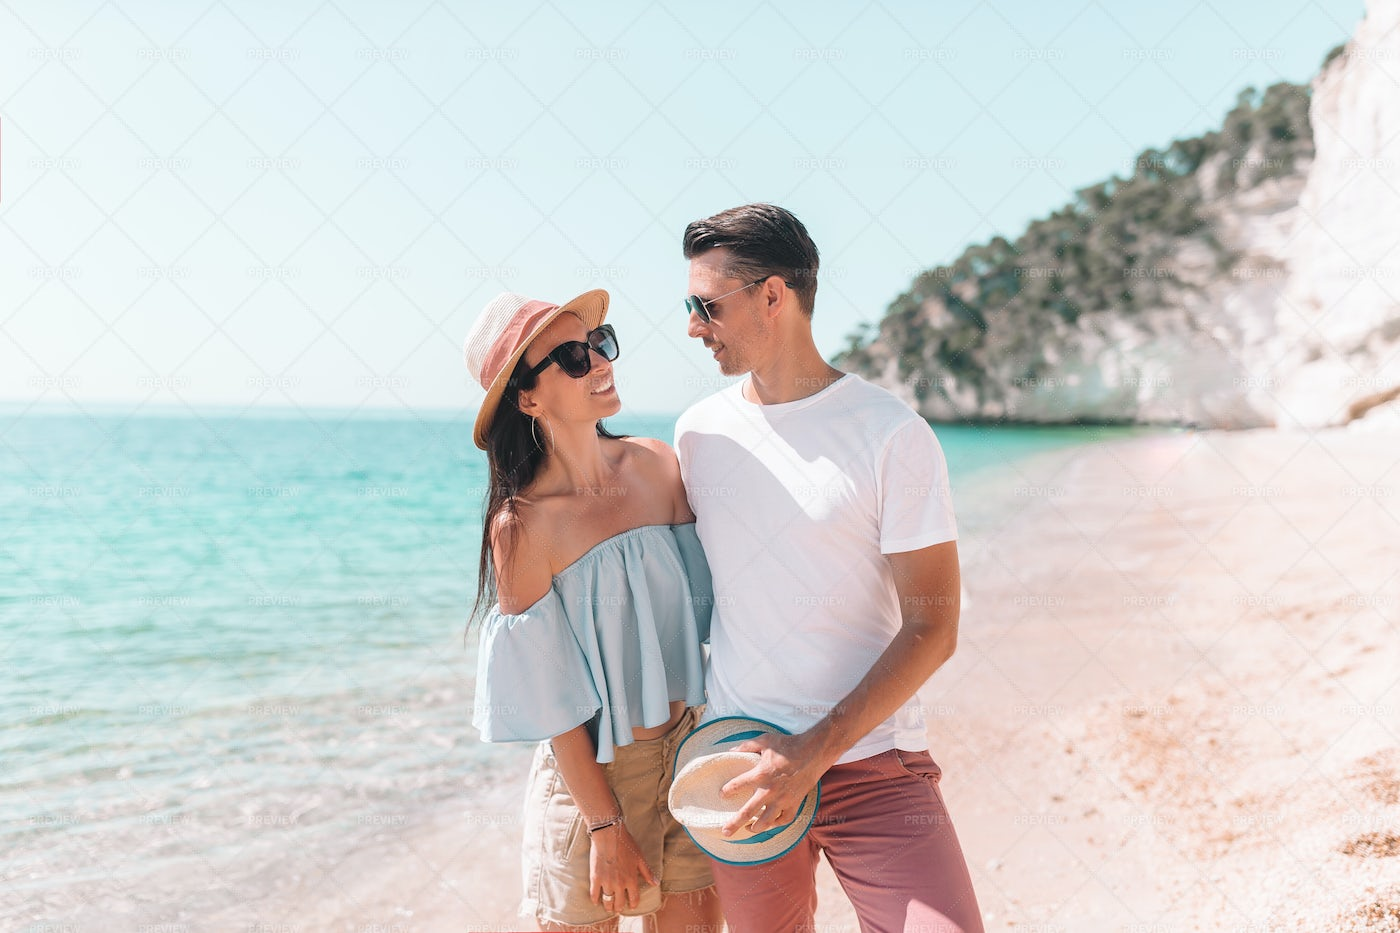 Couple Looking At Each Other: Stock Photos